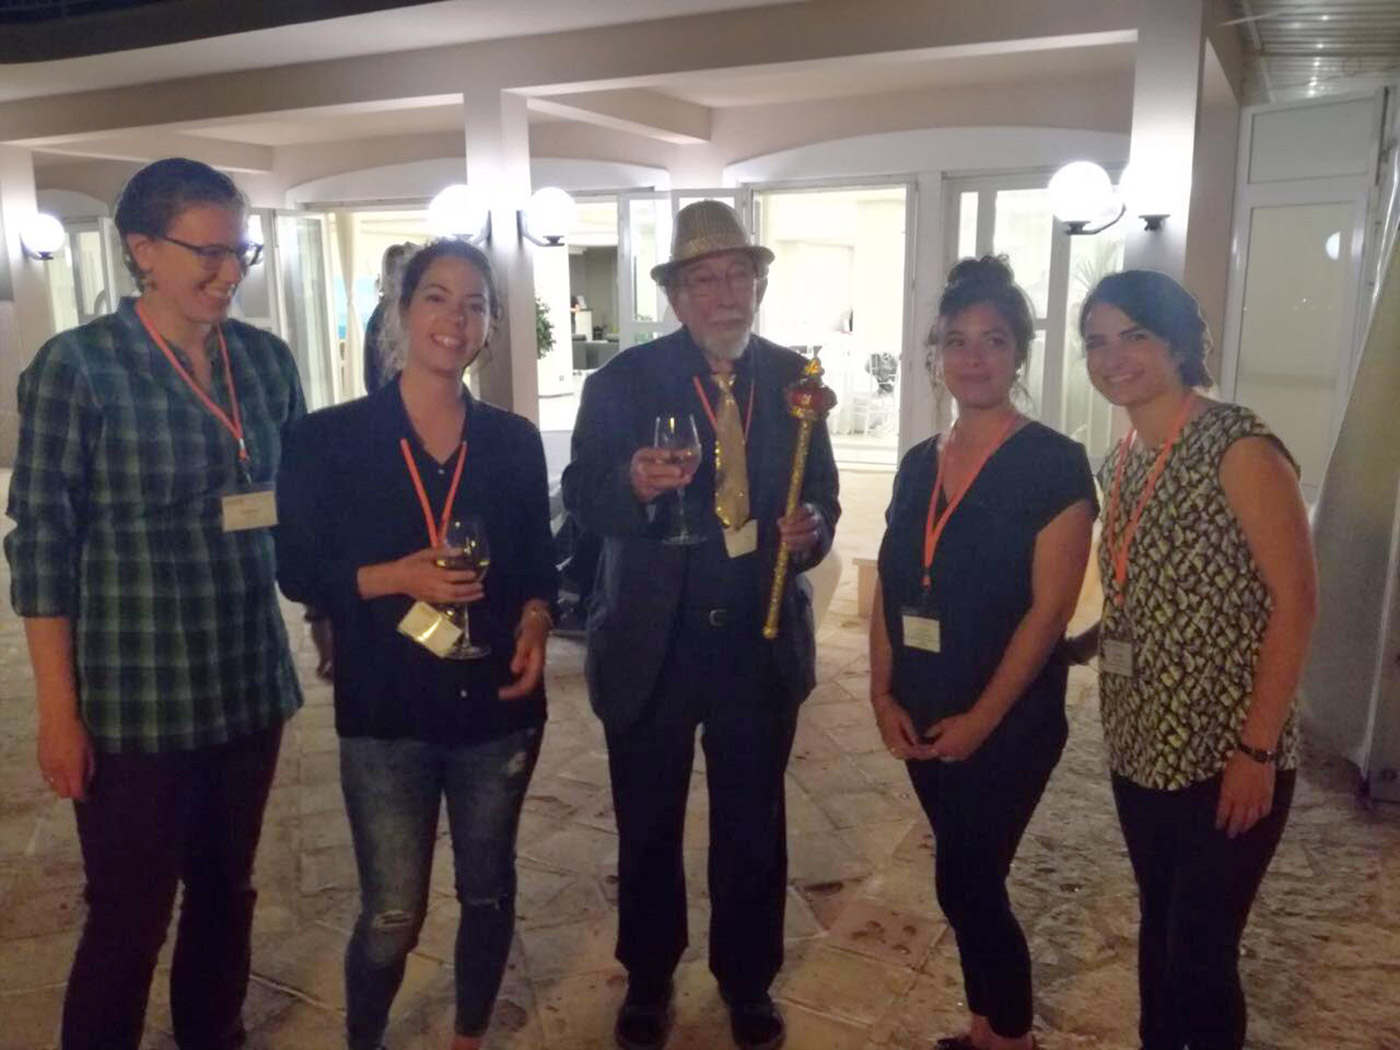 Cecile Exertier and Matilde Trabuco with Professor Sir Tom Blundell director of the Erice International Crystallography School